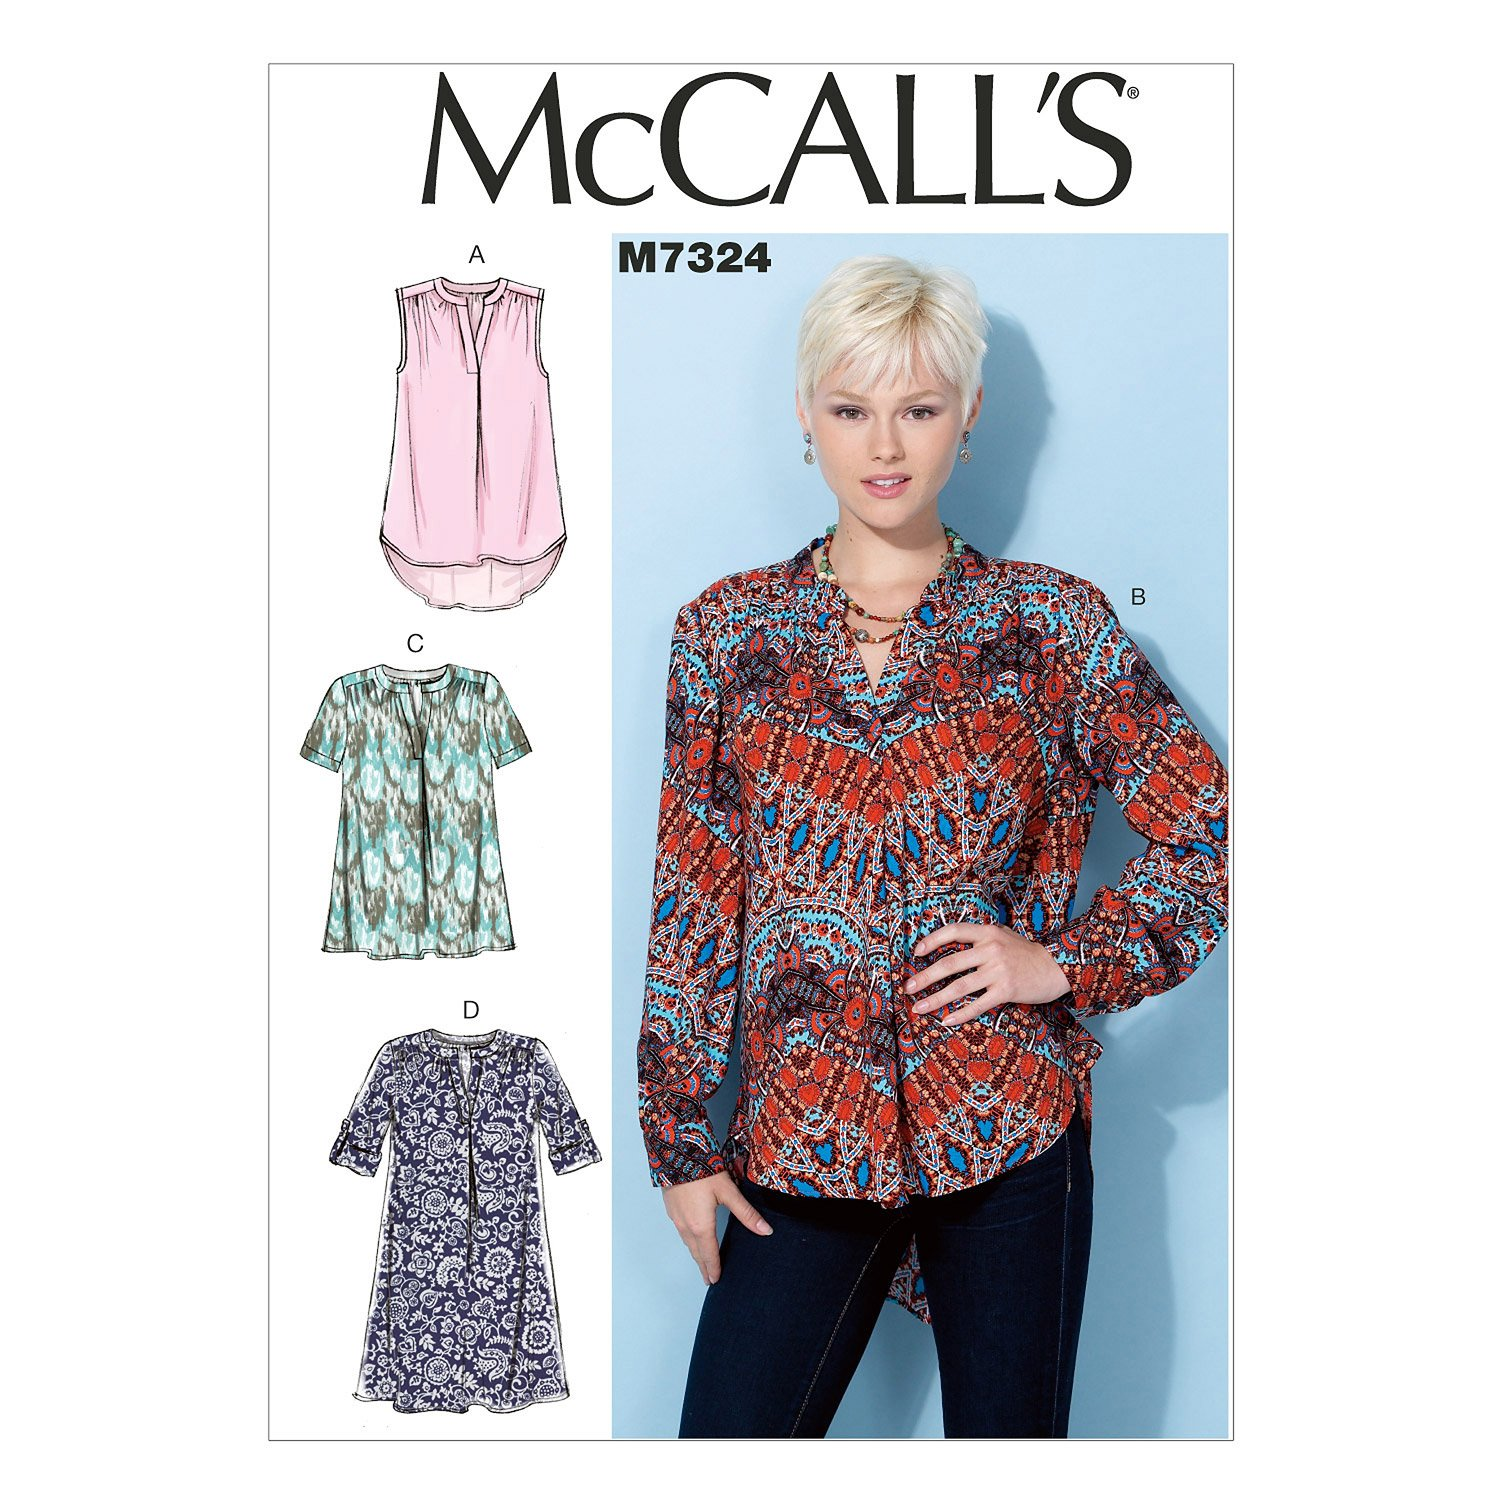 bb9182dffc7353 McCall's Patterns 7324 A5 Sizes 6-14 Misses Tops and Tunic, Multi-Colour:  Amazon.co.uk: Kitchen & Home